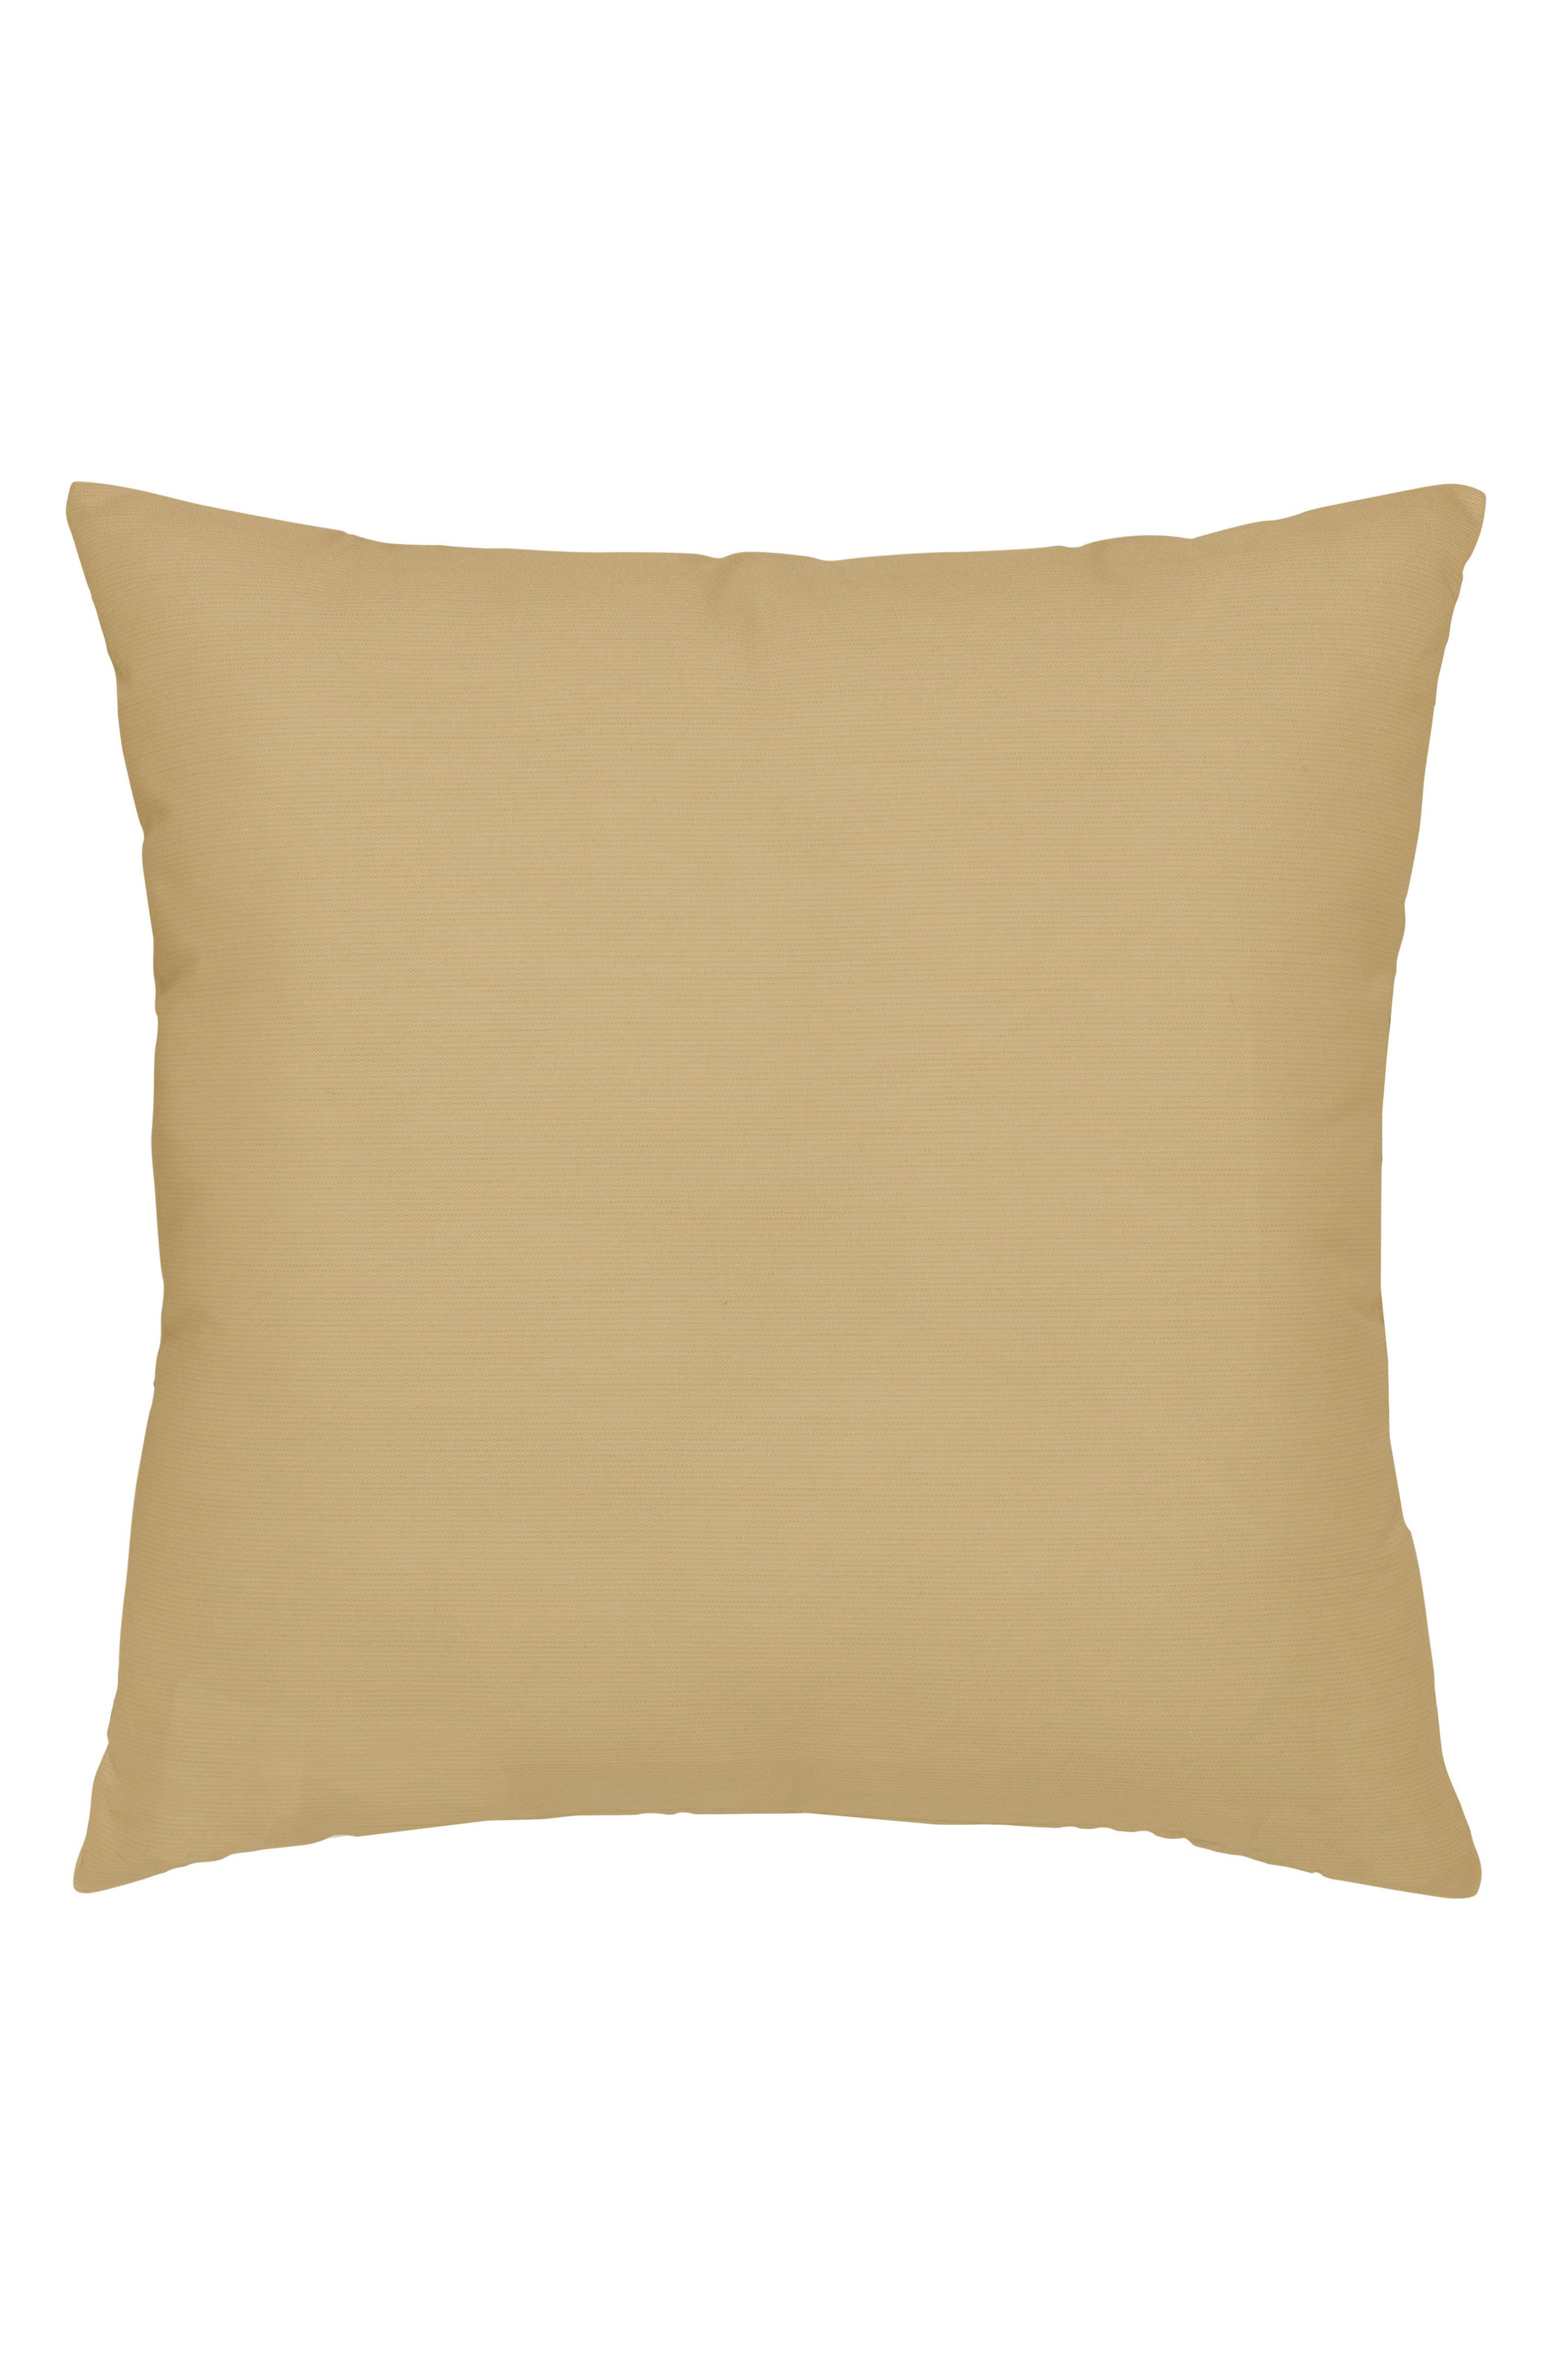 Copper Mountain Indoor/Outdoor Accent Pillow,                             Alternate thumbnail 2, color,                             200